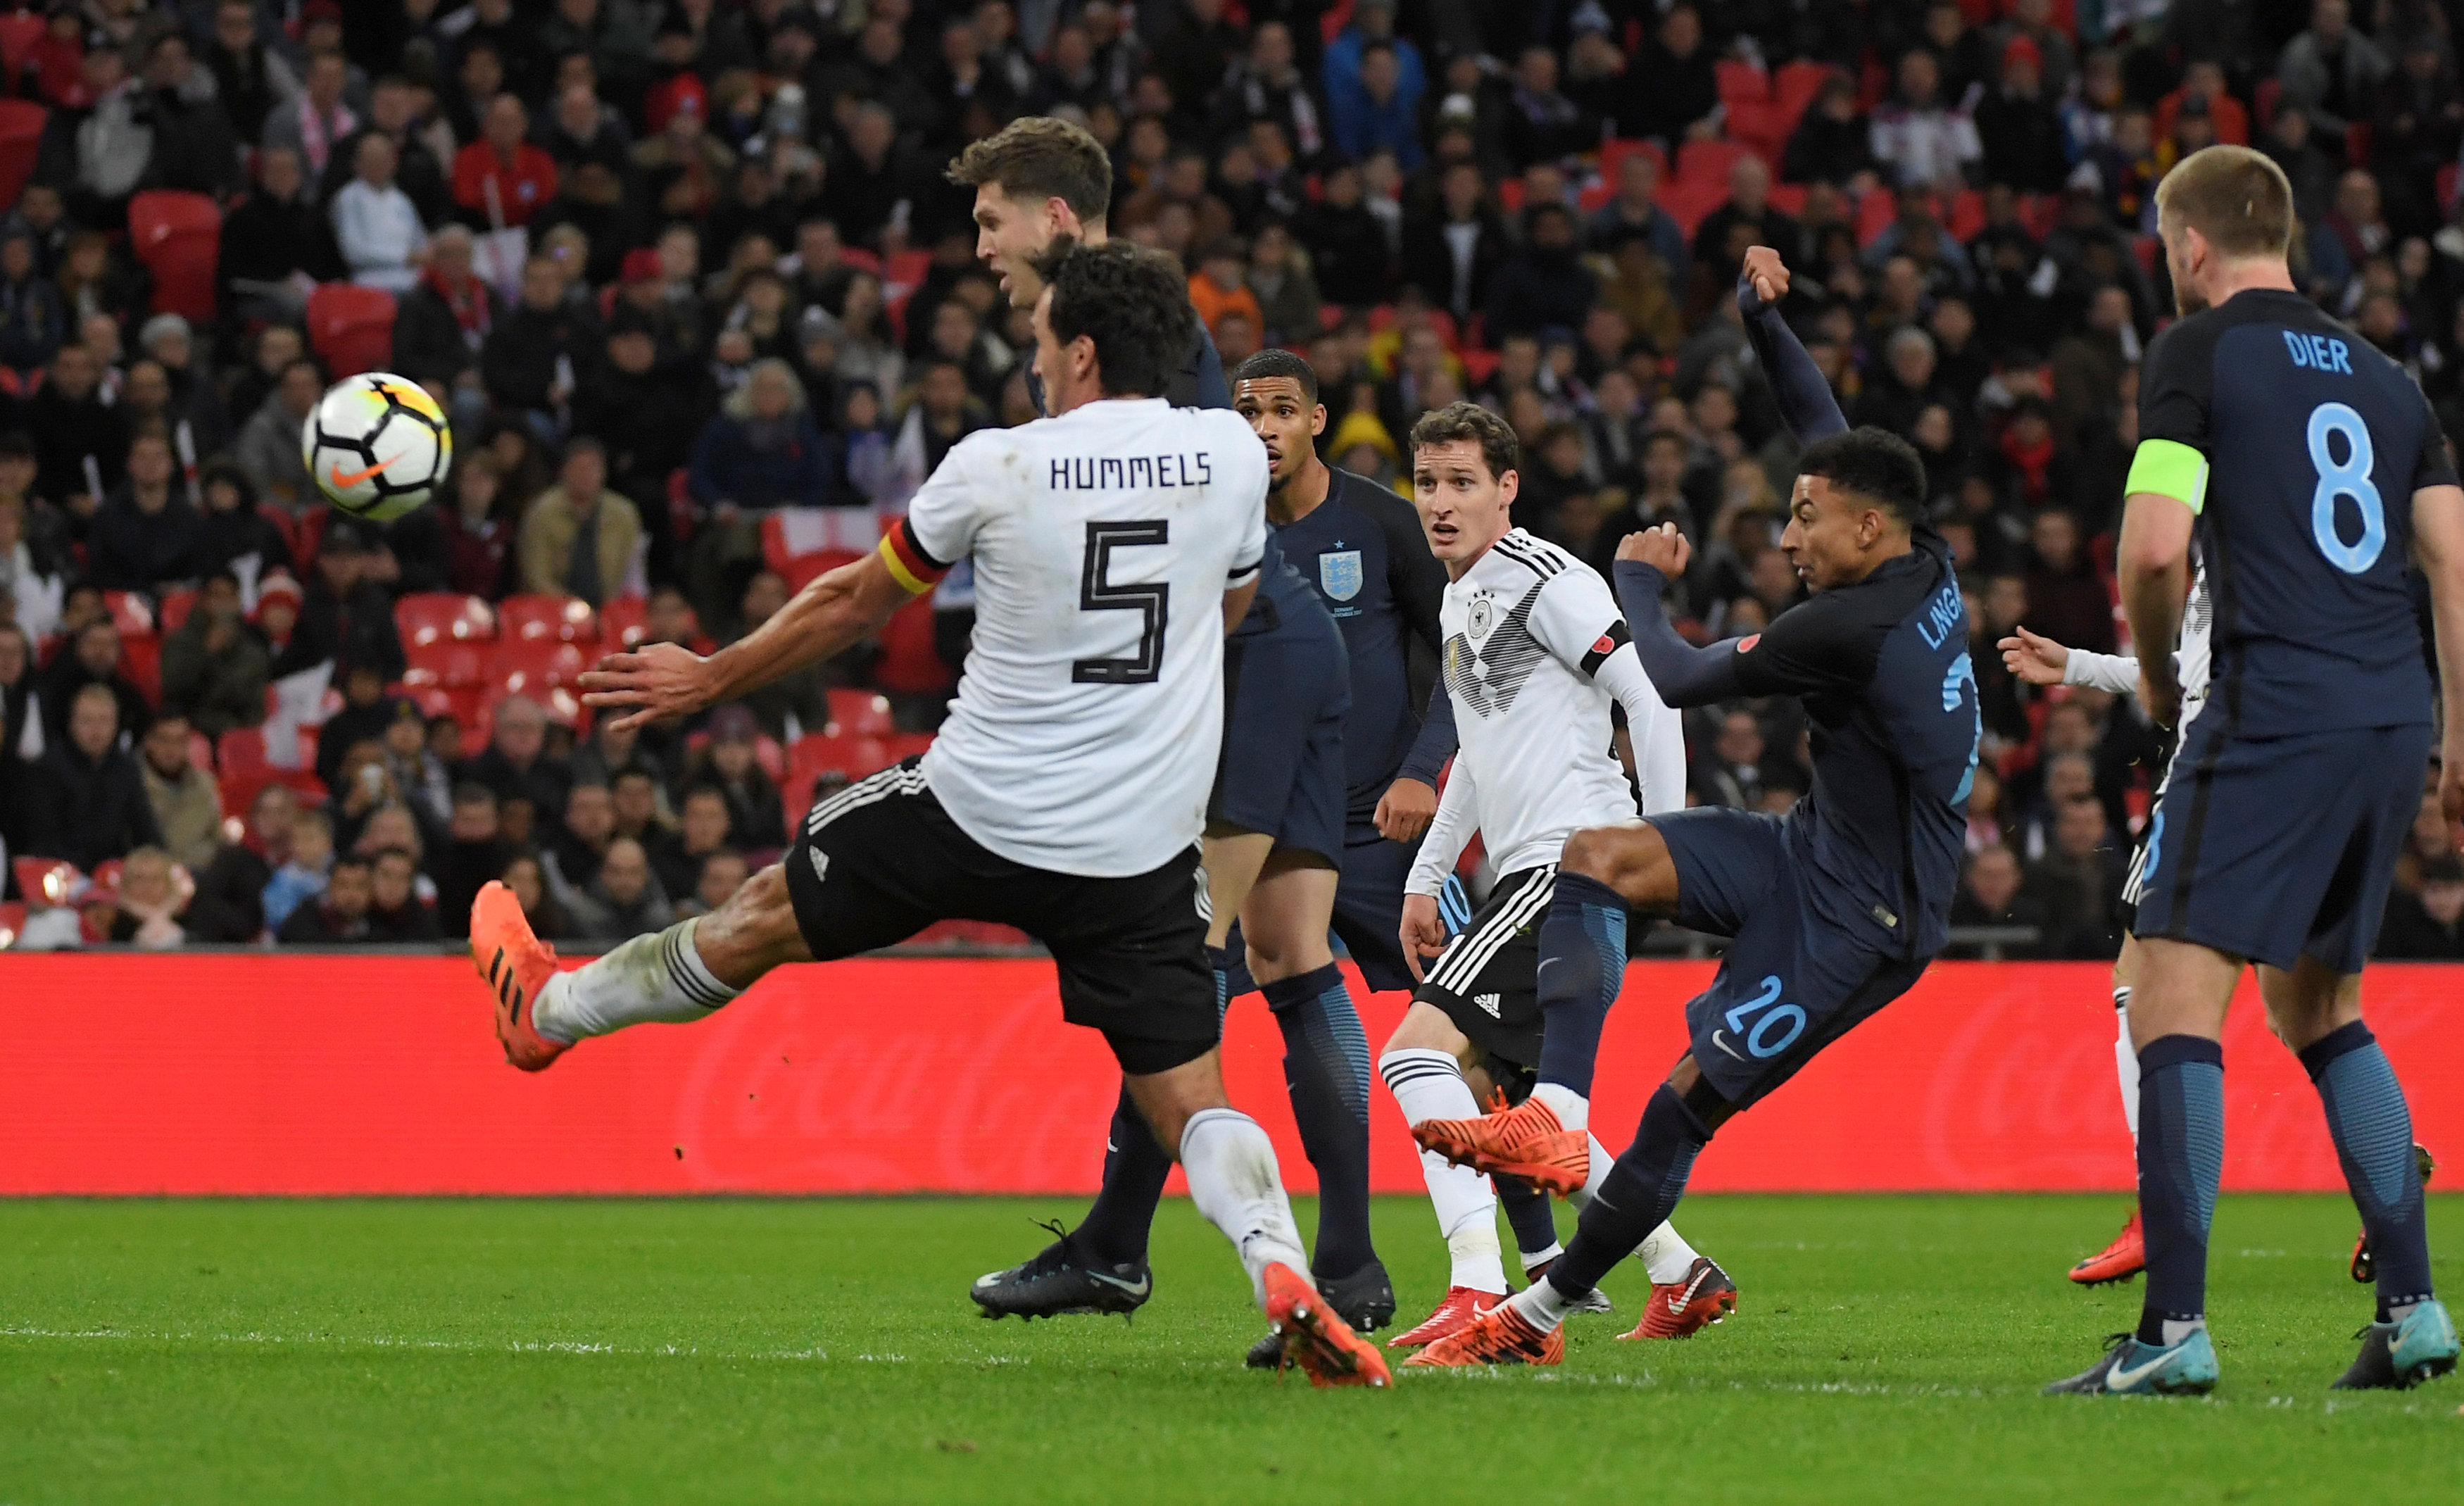 Amical l 39 angleterre et l 39 allemagne se neutralisent russie 2018 coupe du monde football - Resultat coupe angleterre ...